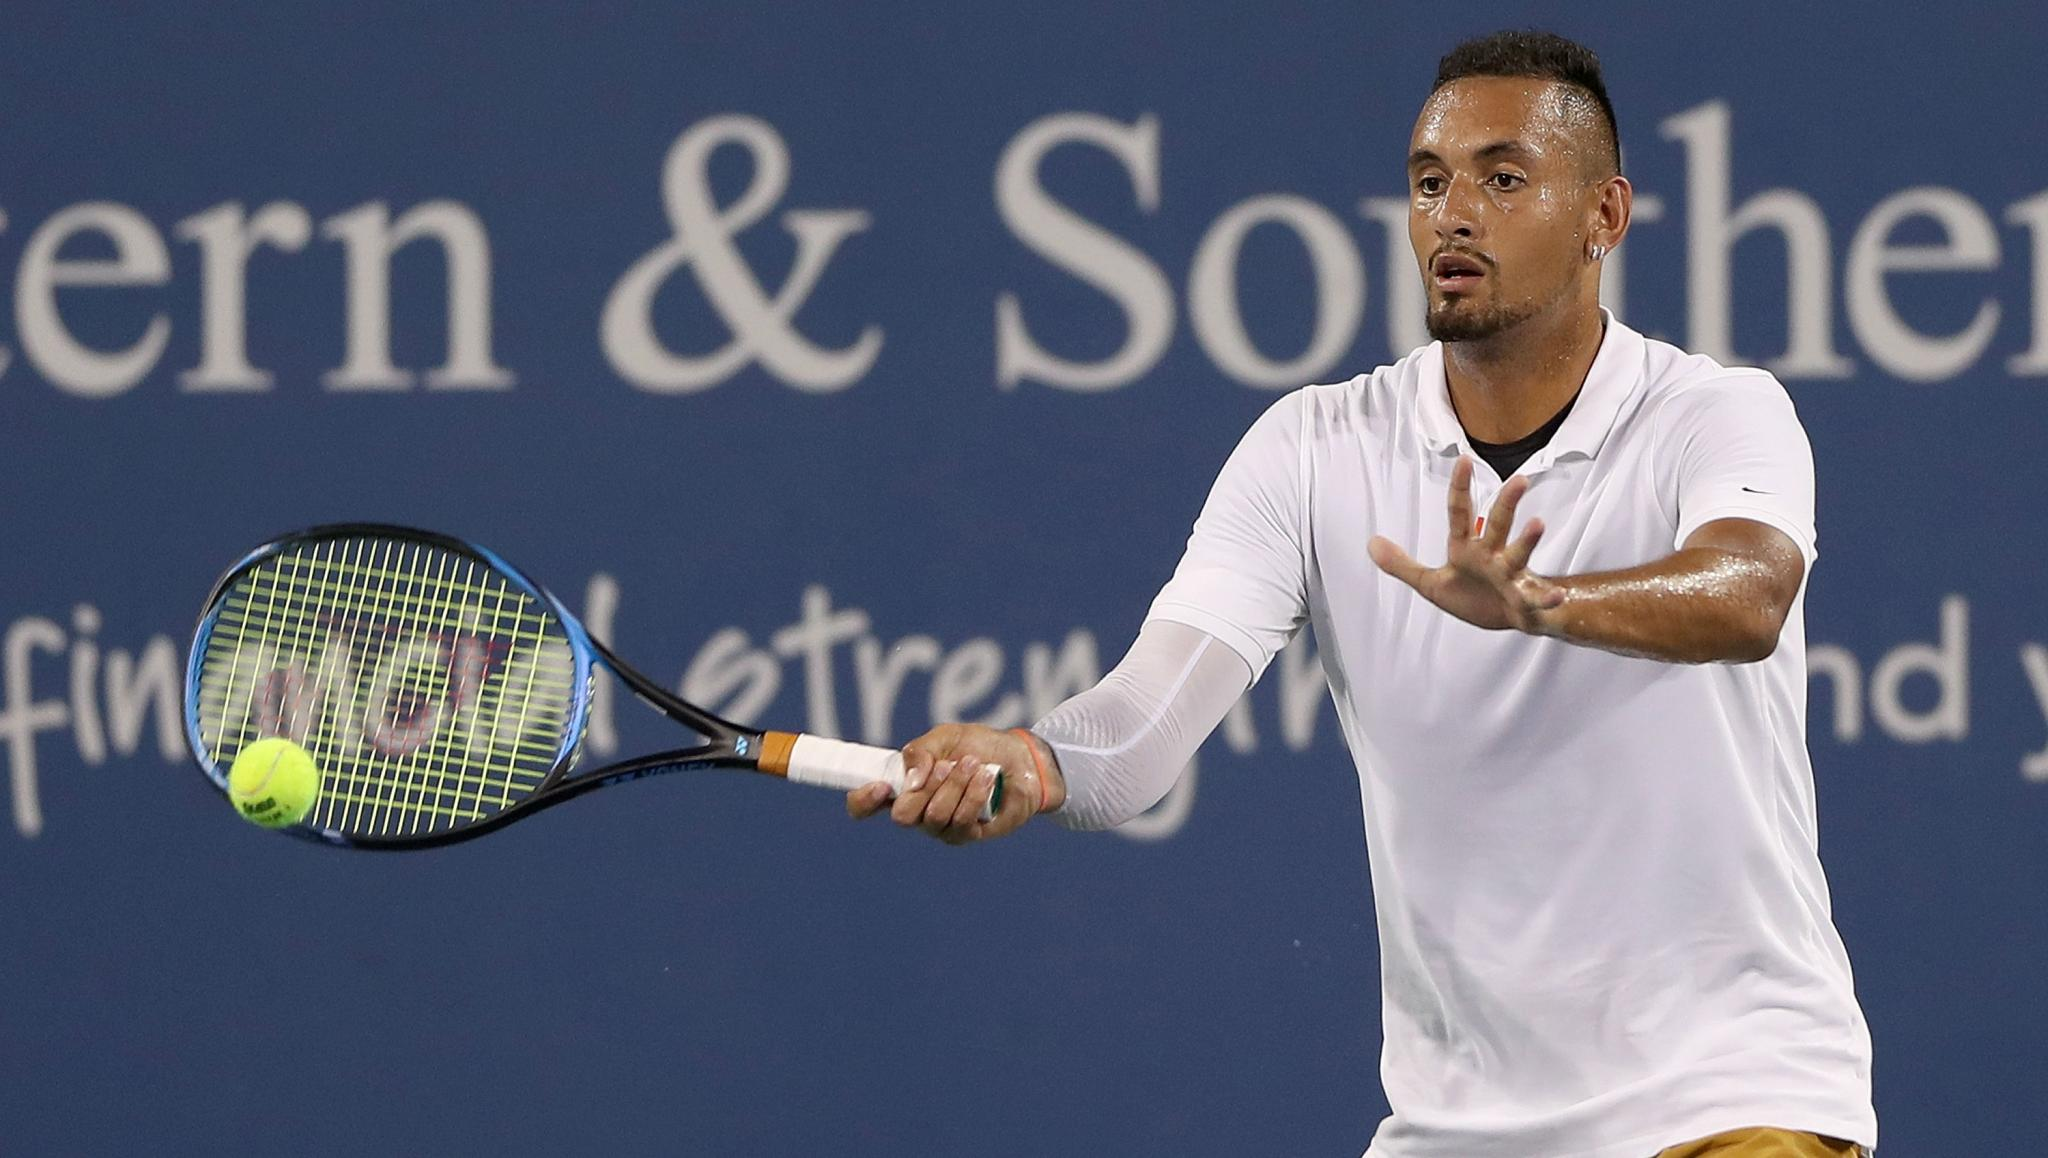 Nick Kyrgios Offers Food To Needy, Says 'Don't Go to Sleep With an Empty Stomach'